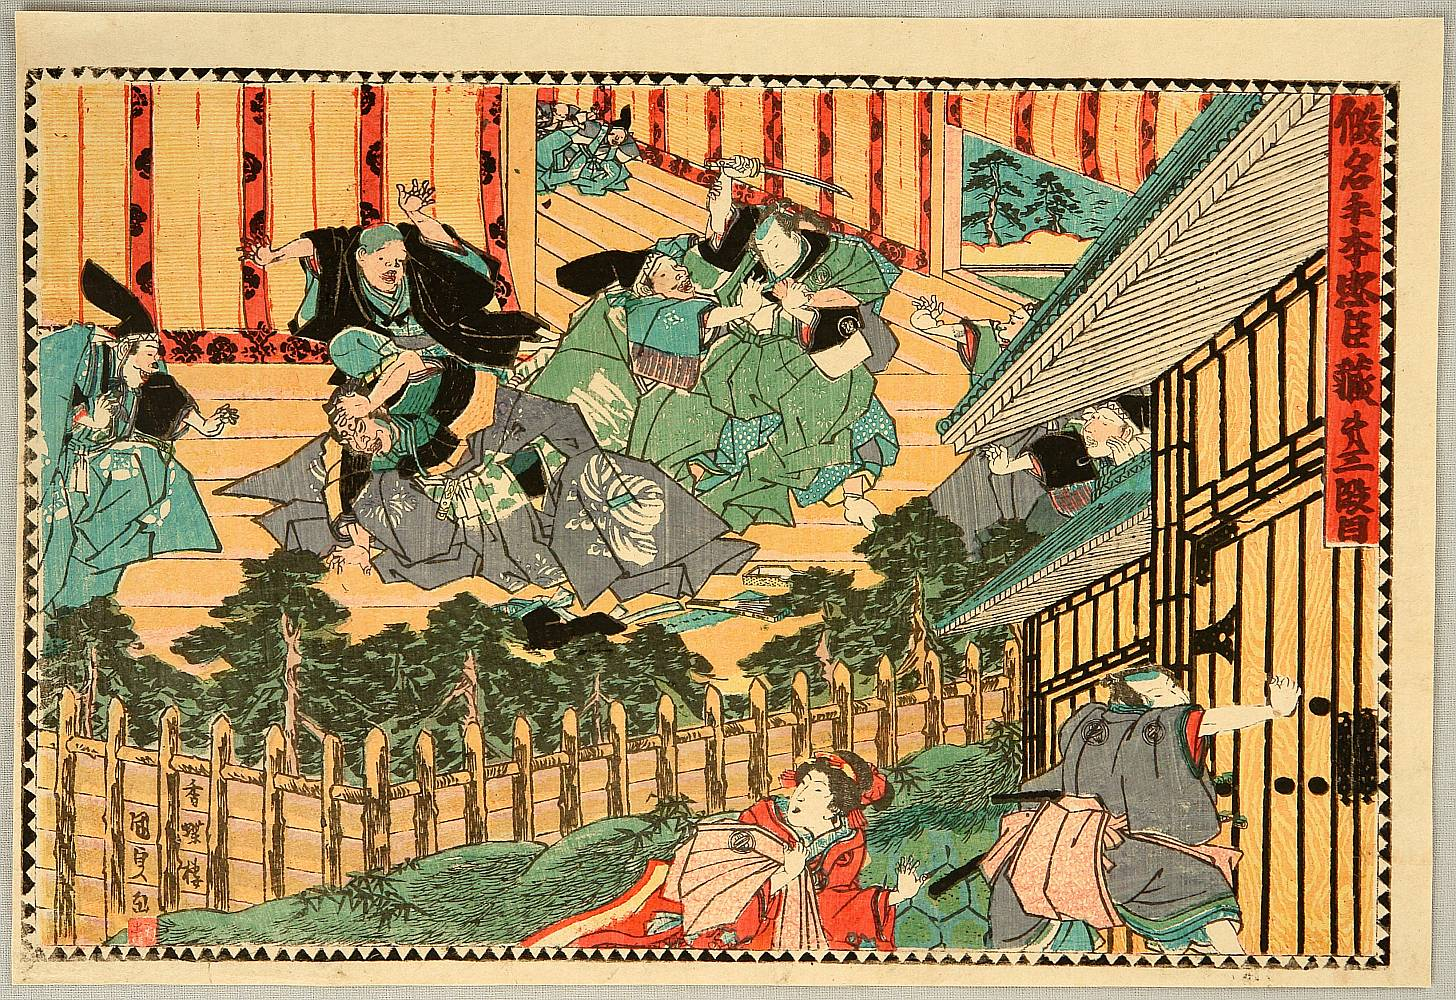 the bushidos customs and attitudes in the tale of the 47 ronin The revenge of the forty-seven ronin (forty-seven masterless samurai), also known as the akō vendetta or the genroku akō incident, is an 18th-century historical event and legend in japan in.